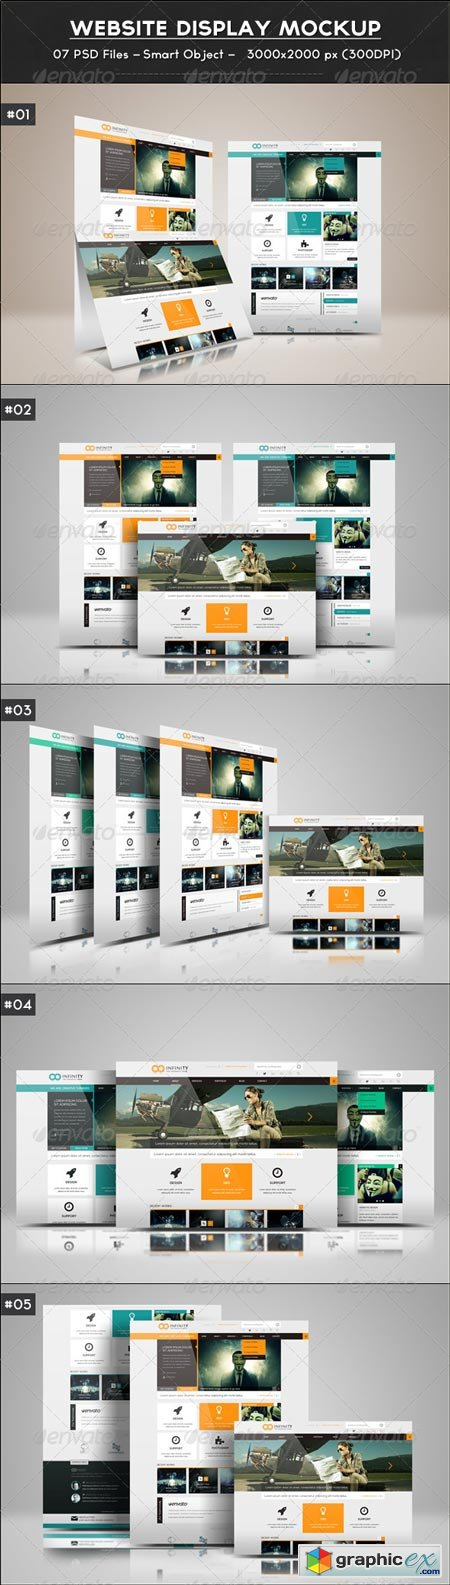 Website Display Mockup 6552077